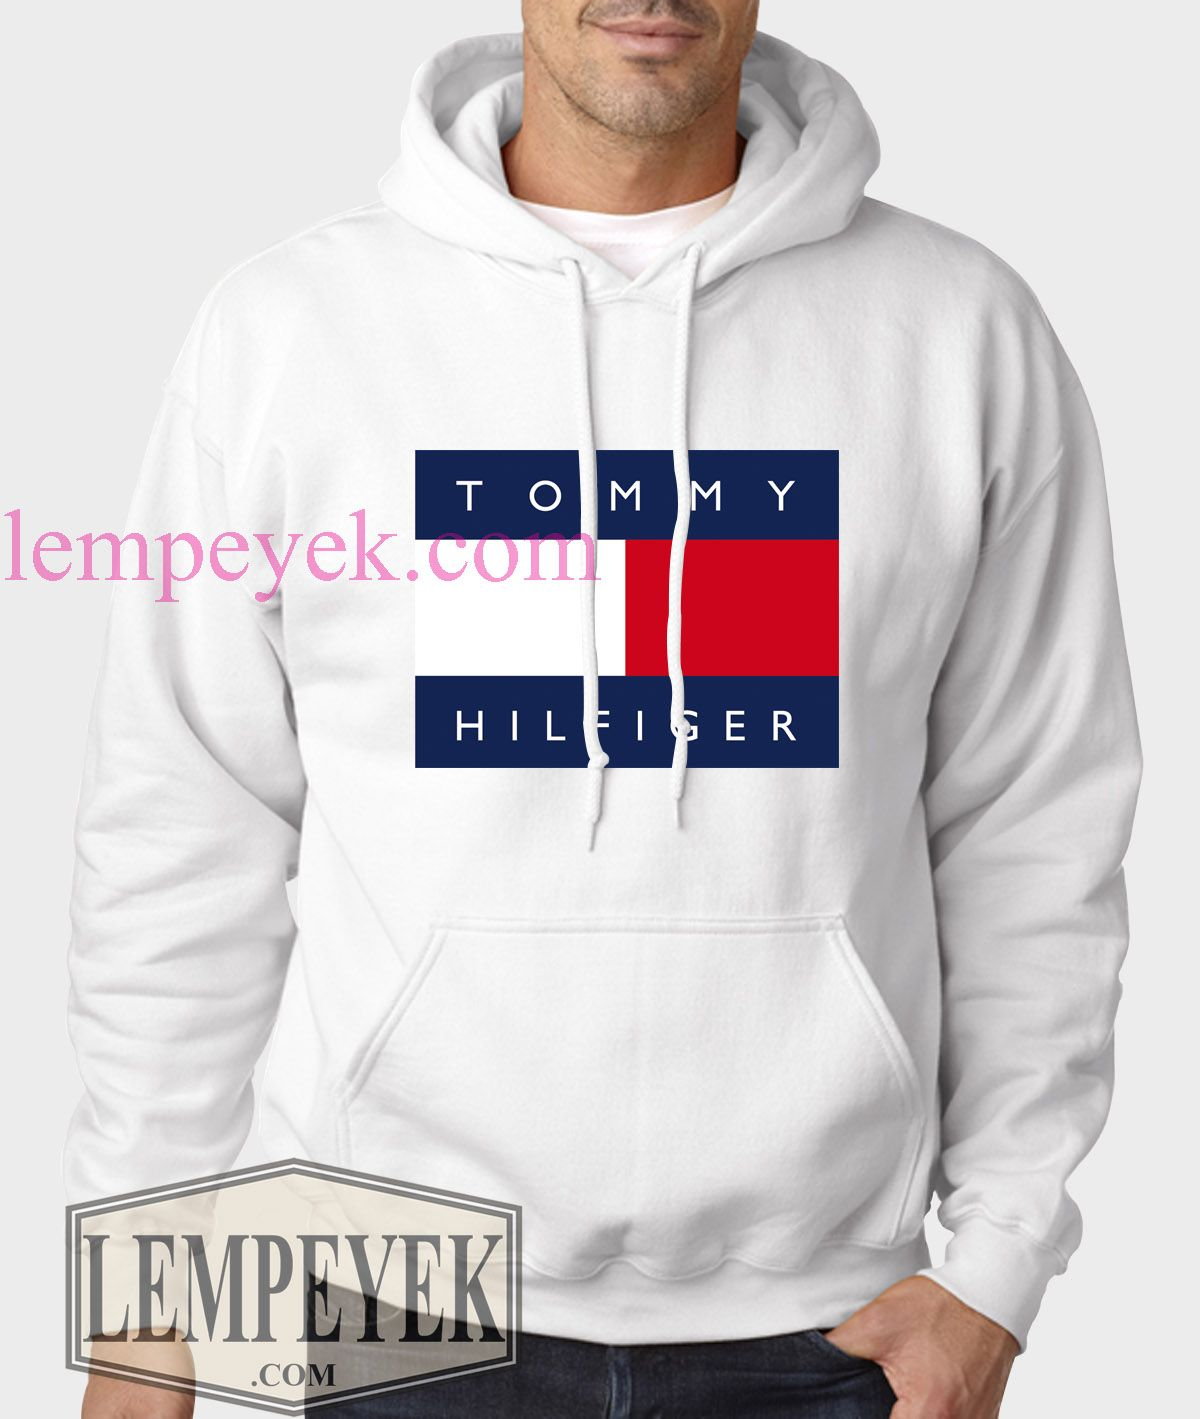 69b9a3cb67028 Tommy Hilfiger Hoodie Unisex Adult Size S-XL